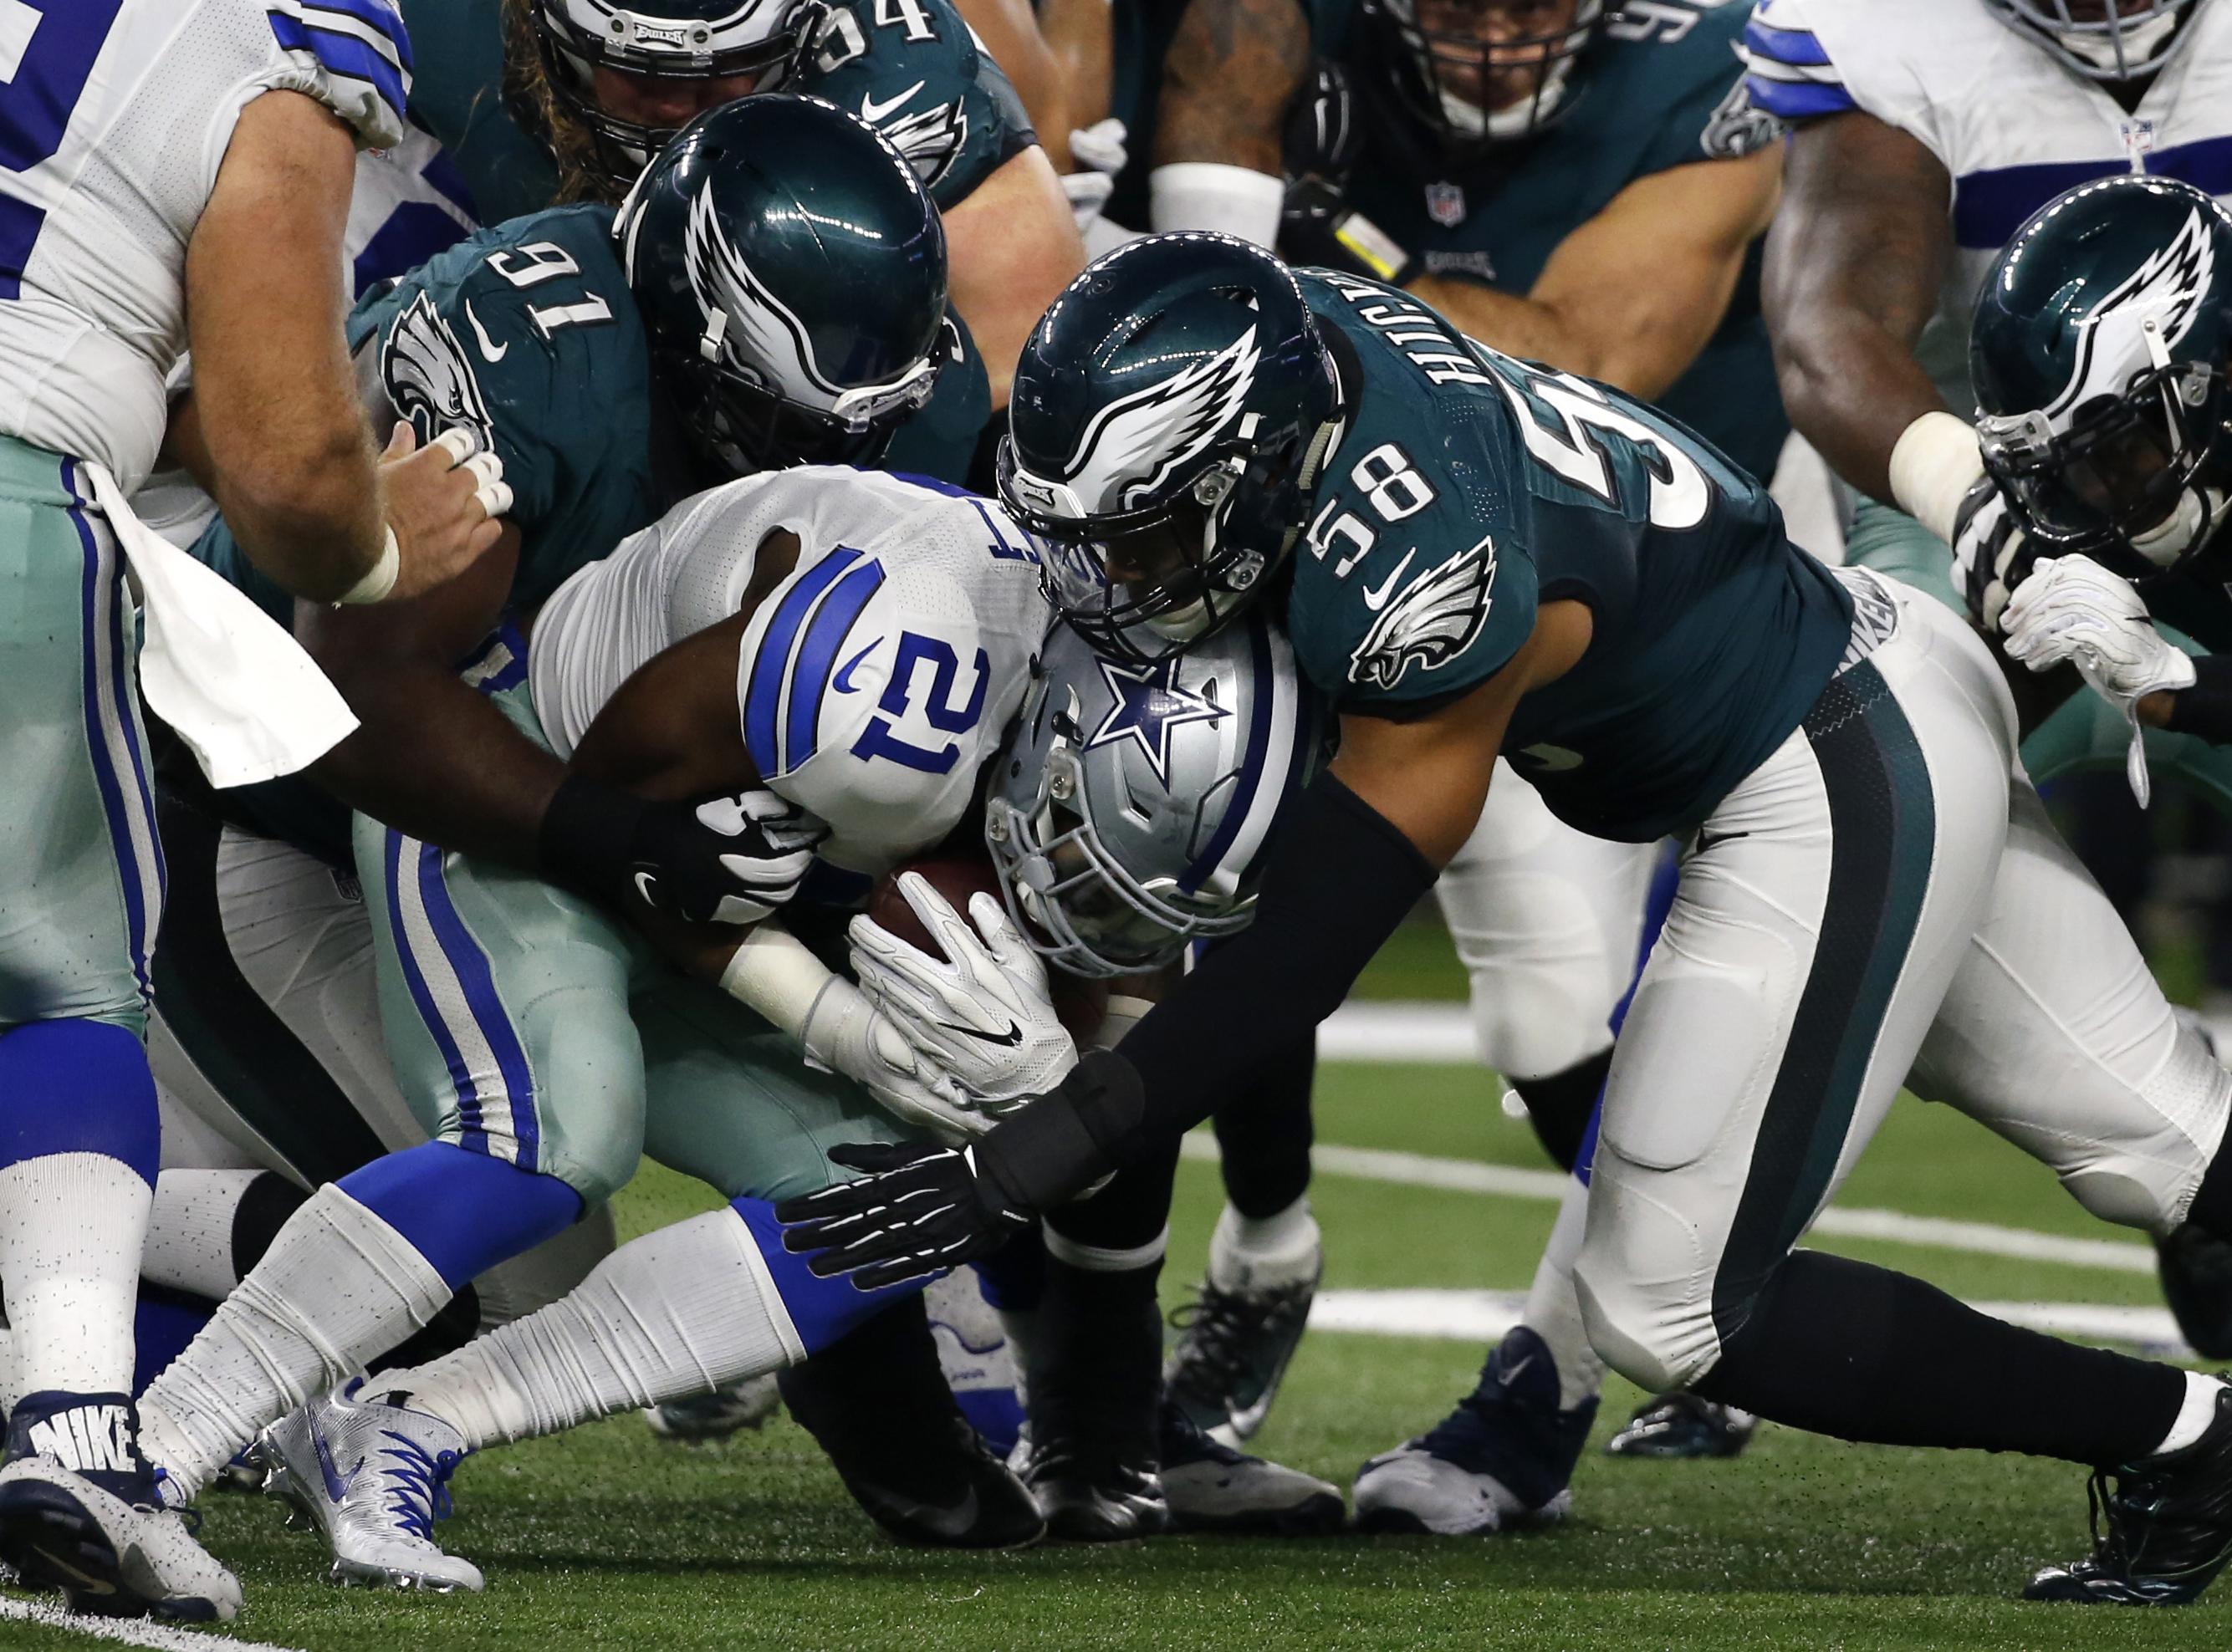 FILE - In a Sunday, Oct. 30, 2016 file photo, Dallas Cowboys running back Ezekiel Elliott (21) is stopped on a run by Philadelphia Eagles defensive tackle Fletcher Cox (91) and middle linebacker Jordan Hicks (58) in the second half of an NFL football game